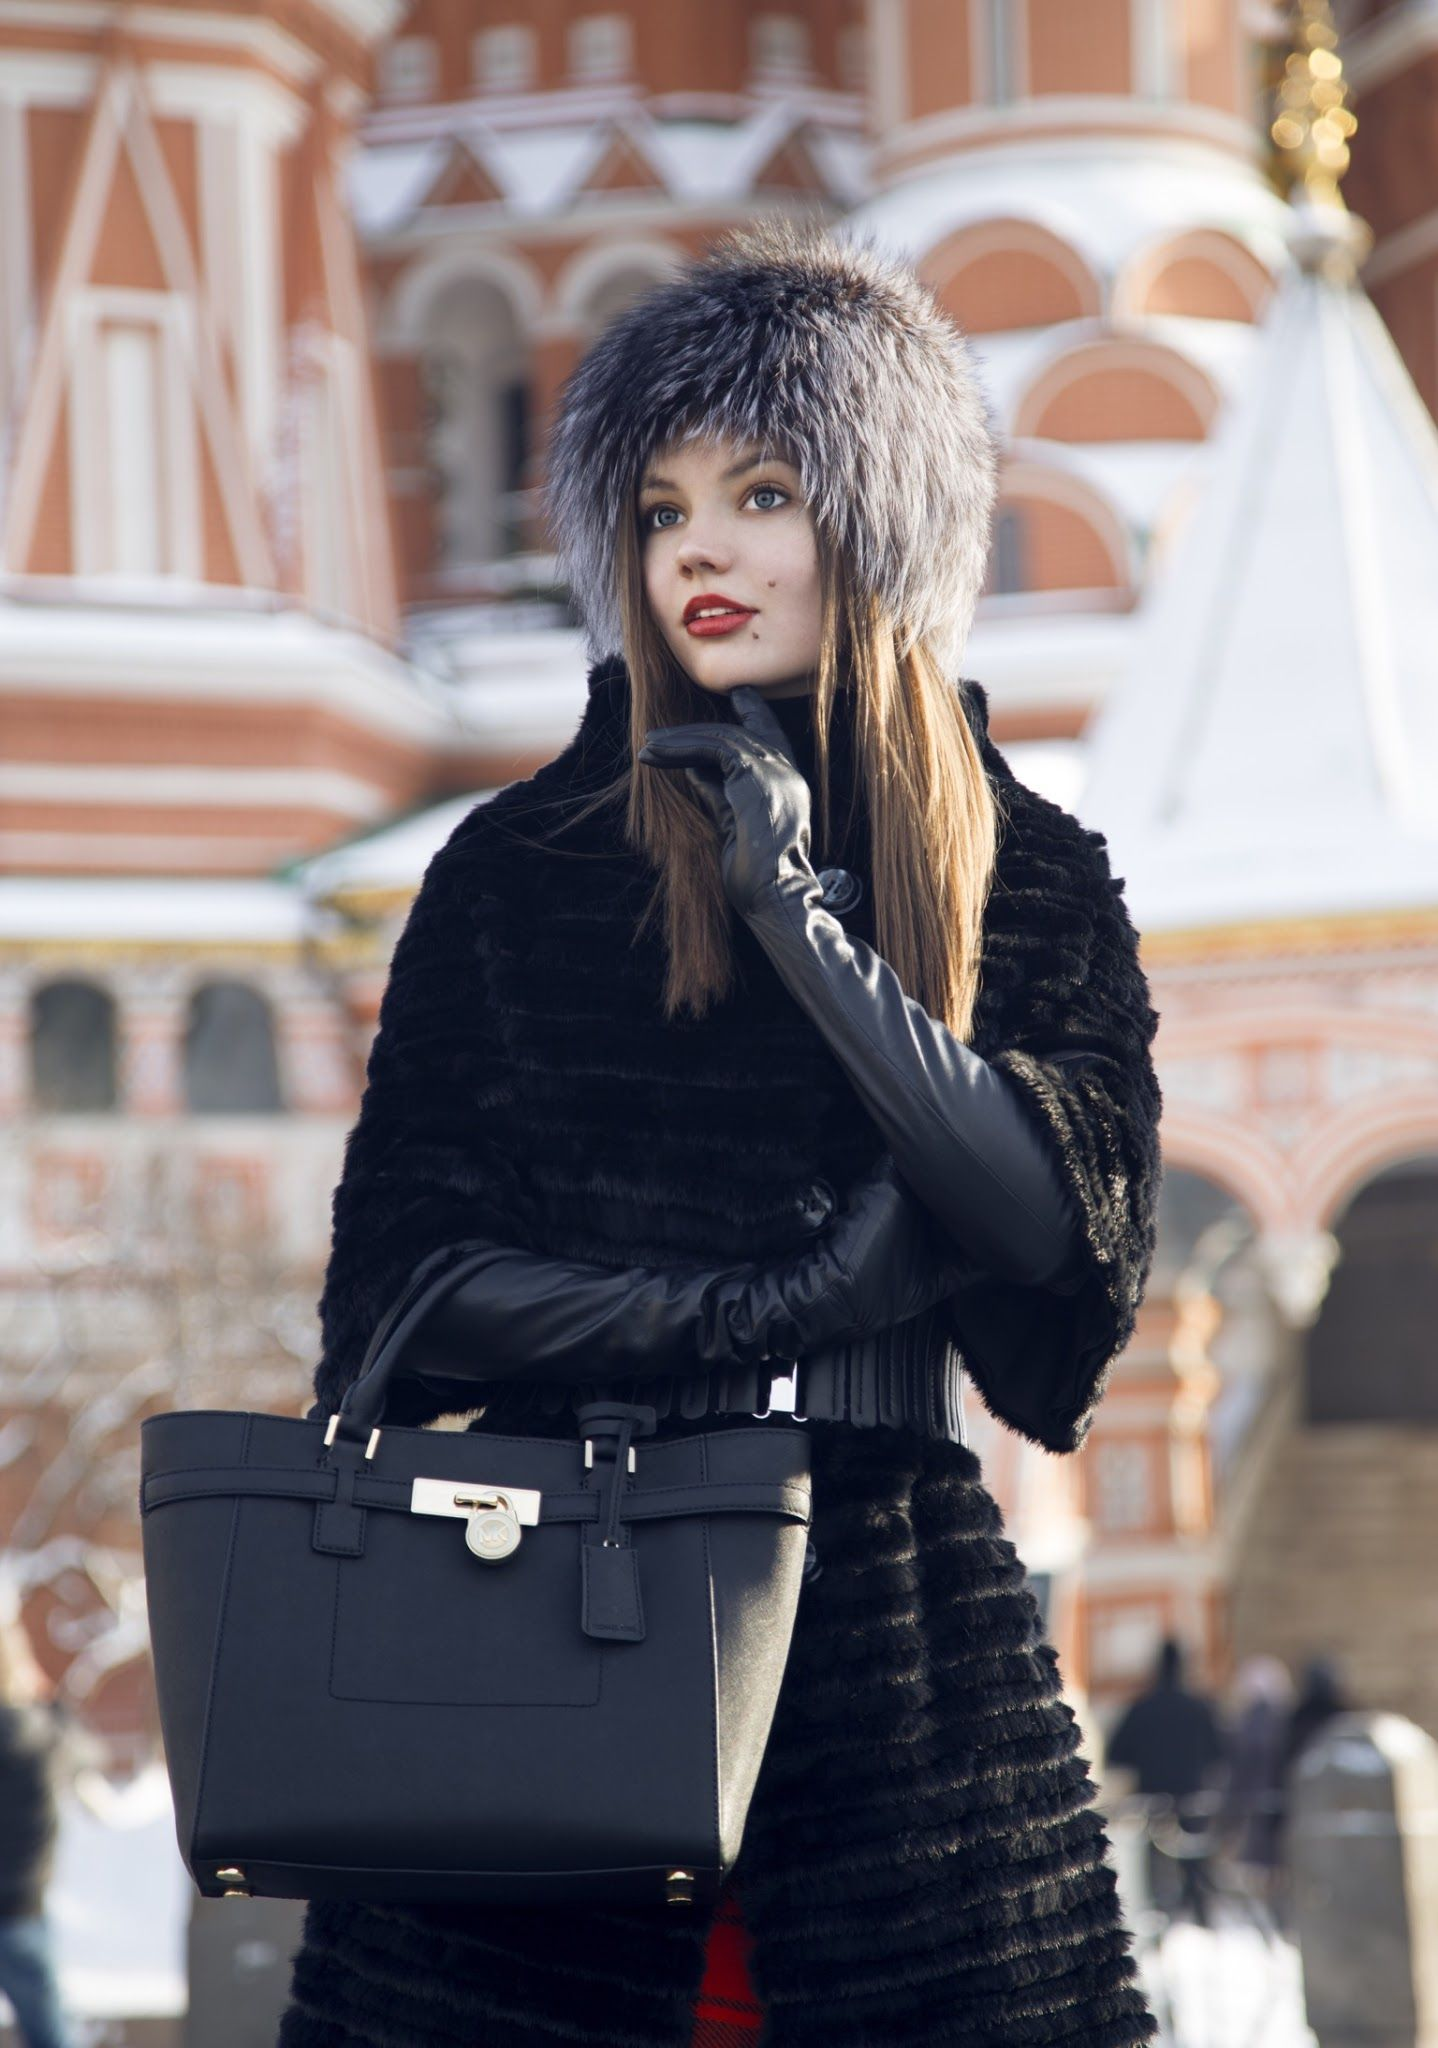 Ladies in leather gloves and boots - I Am Guessing She Is Russian In Leather Gloves And Leather Boots